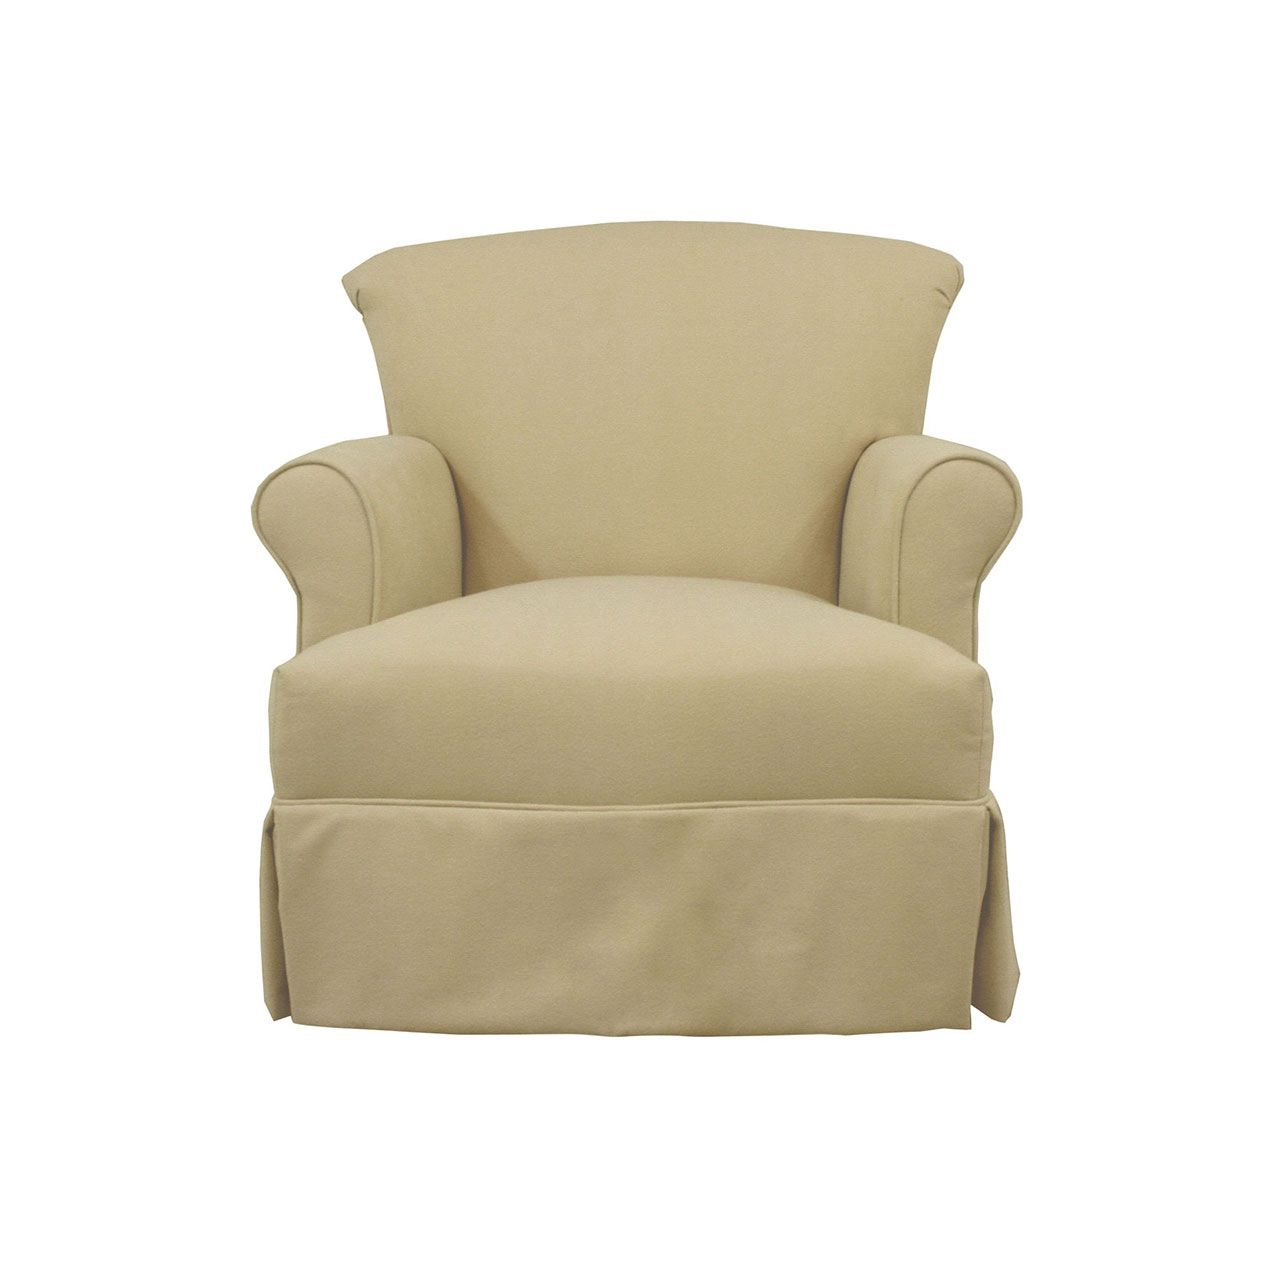 Furniture Upholstery Near Me Find Local Crypton Fabric Retailers Crypton Fabric Rocker Swivel